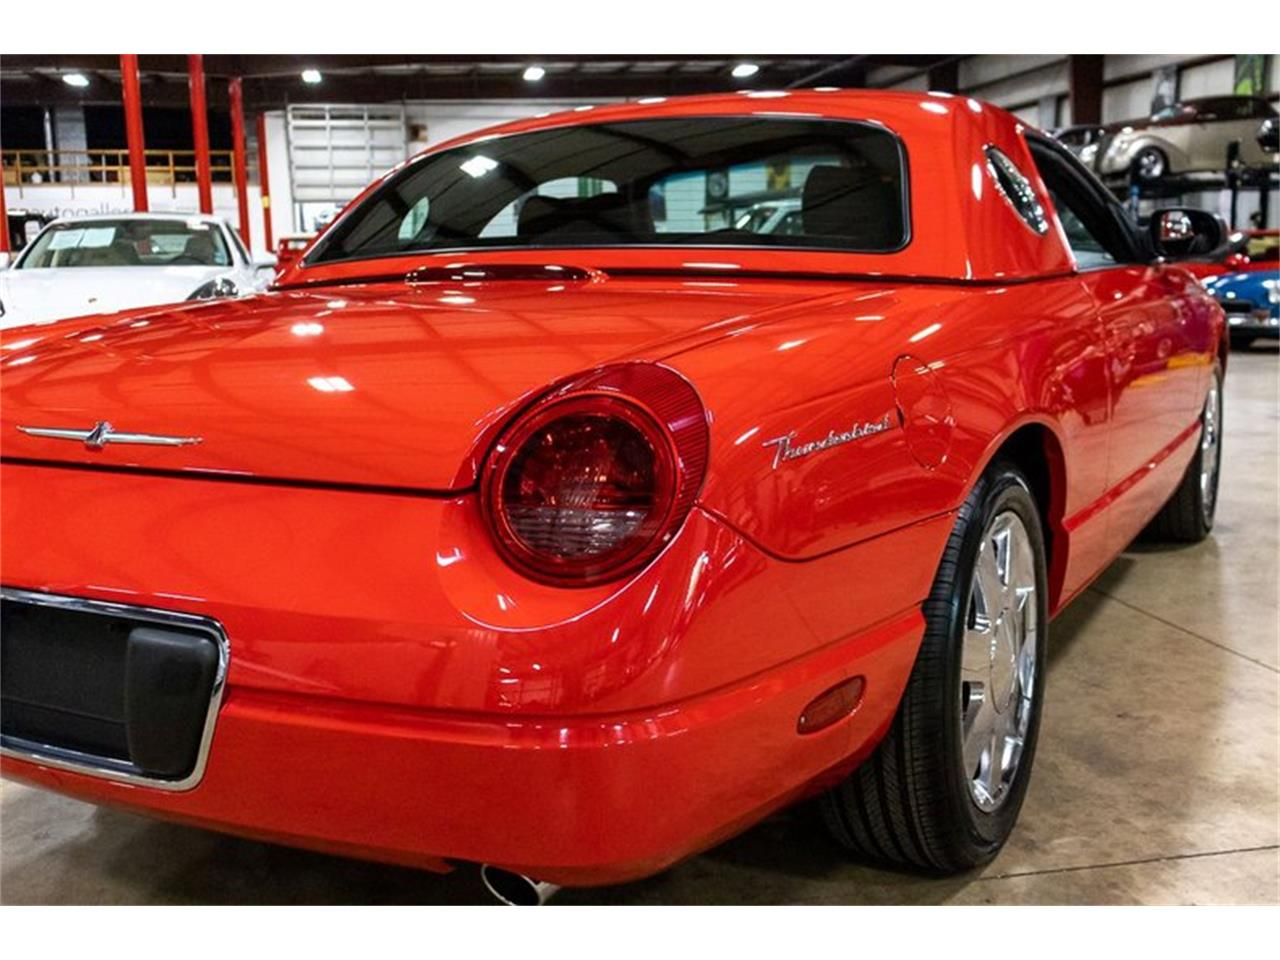 2002 Ford Thunderbird (CC-1383116) for sale in Kentwood, Michigan